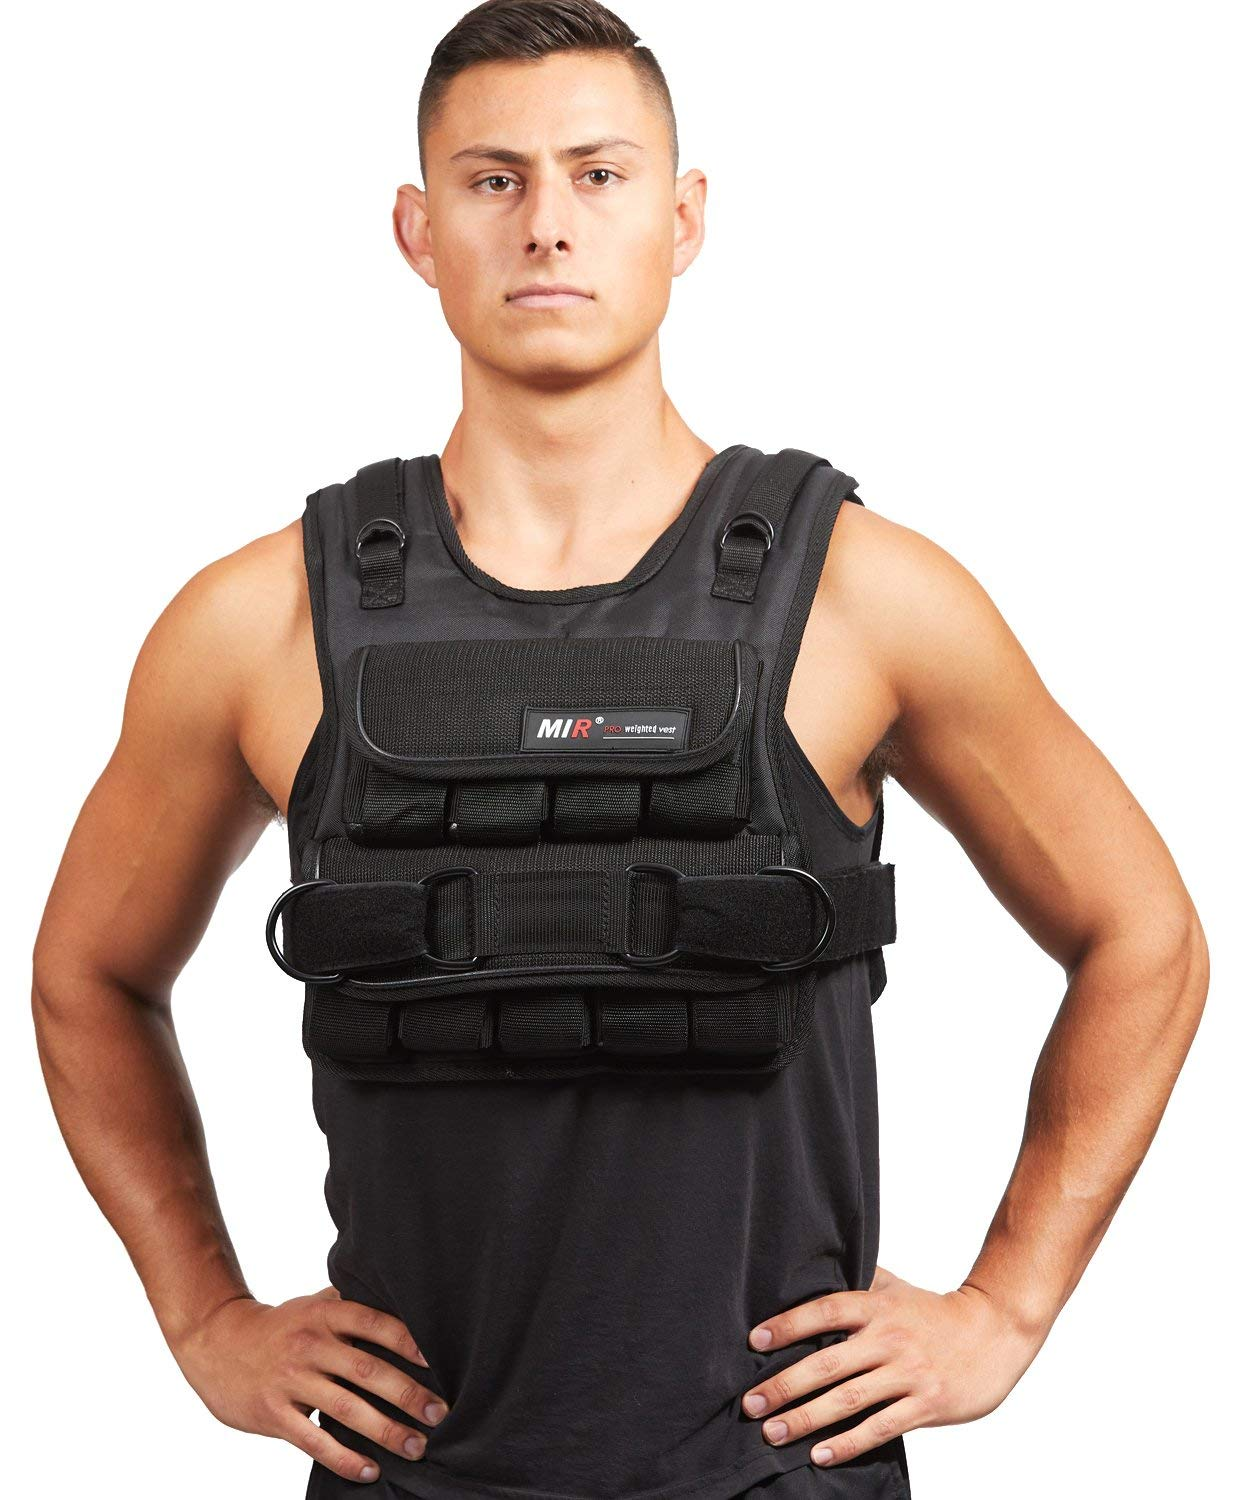 Mir Adjustable Weighted Vest, 30 lb by Mir